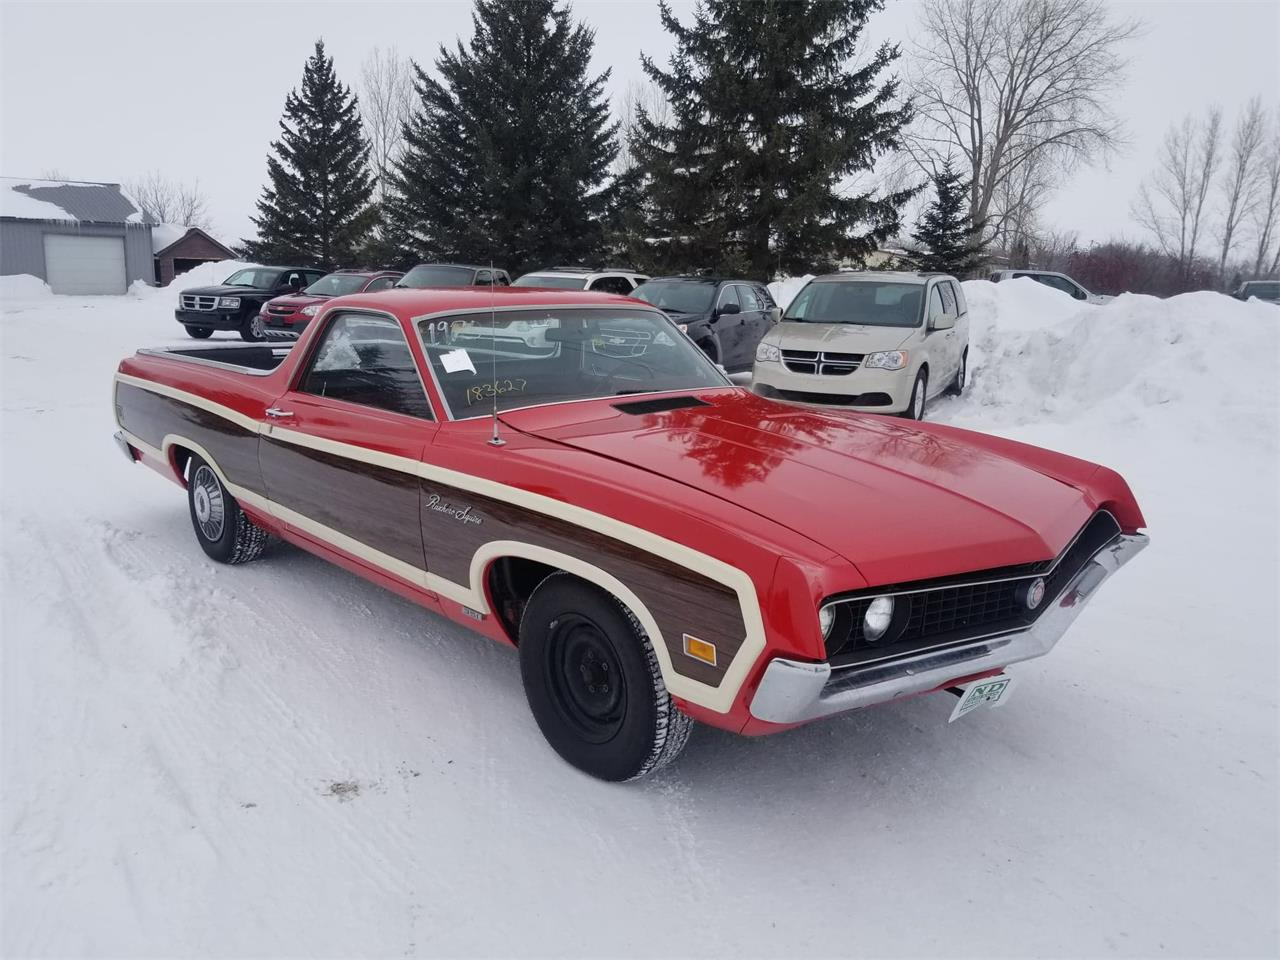 Large Picture of 1970 Ford Ranchero located in Thief River Falls Minnesota - $10,500.00 - PM5R